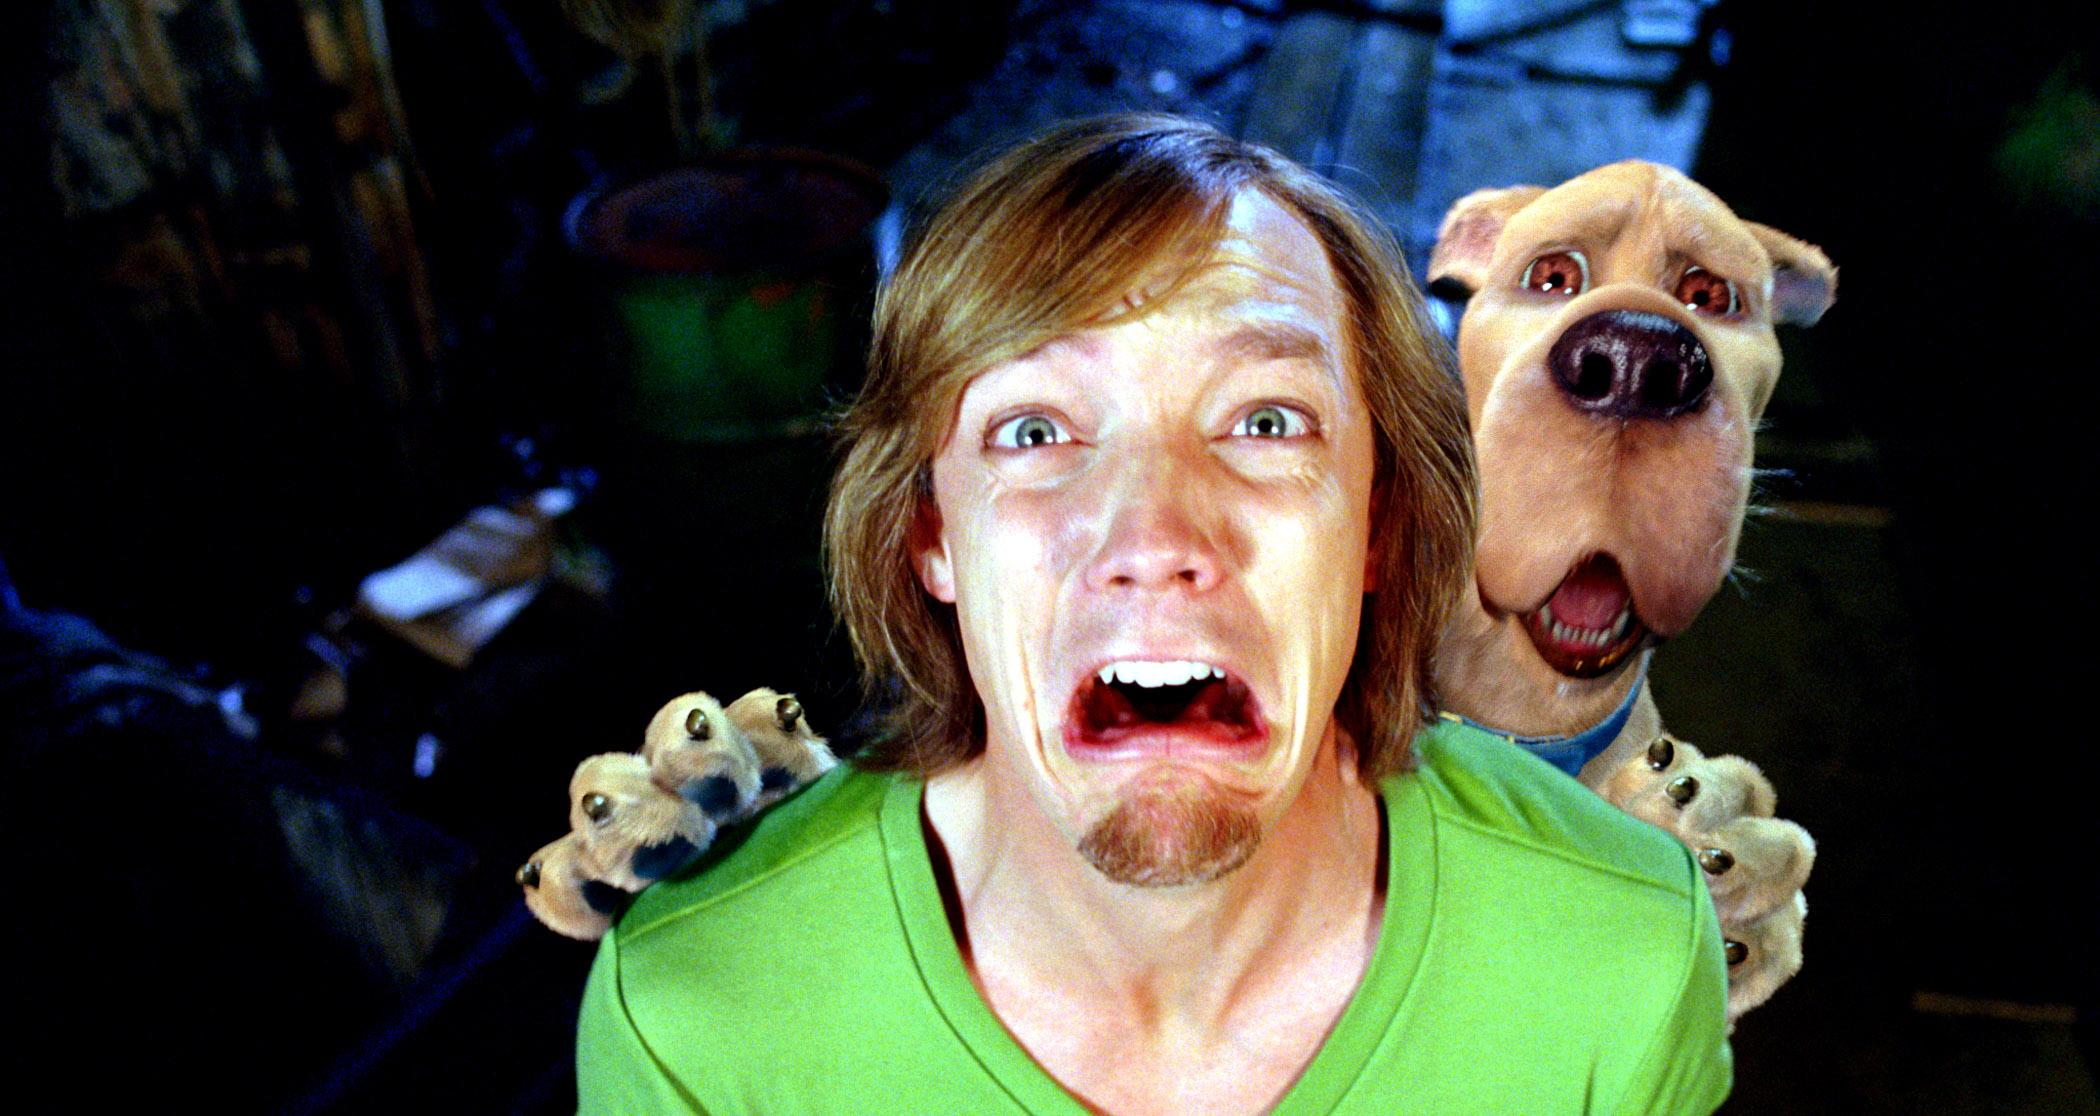 In the live-action movies, Scooby-Doo's fellow scaredy cat Shaggy was played by Matthew Lillard (Photo: Everett Collection)